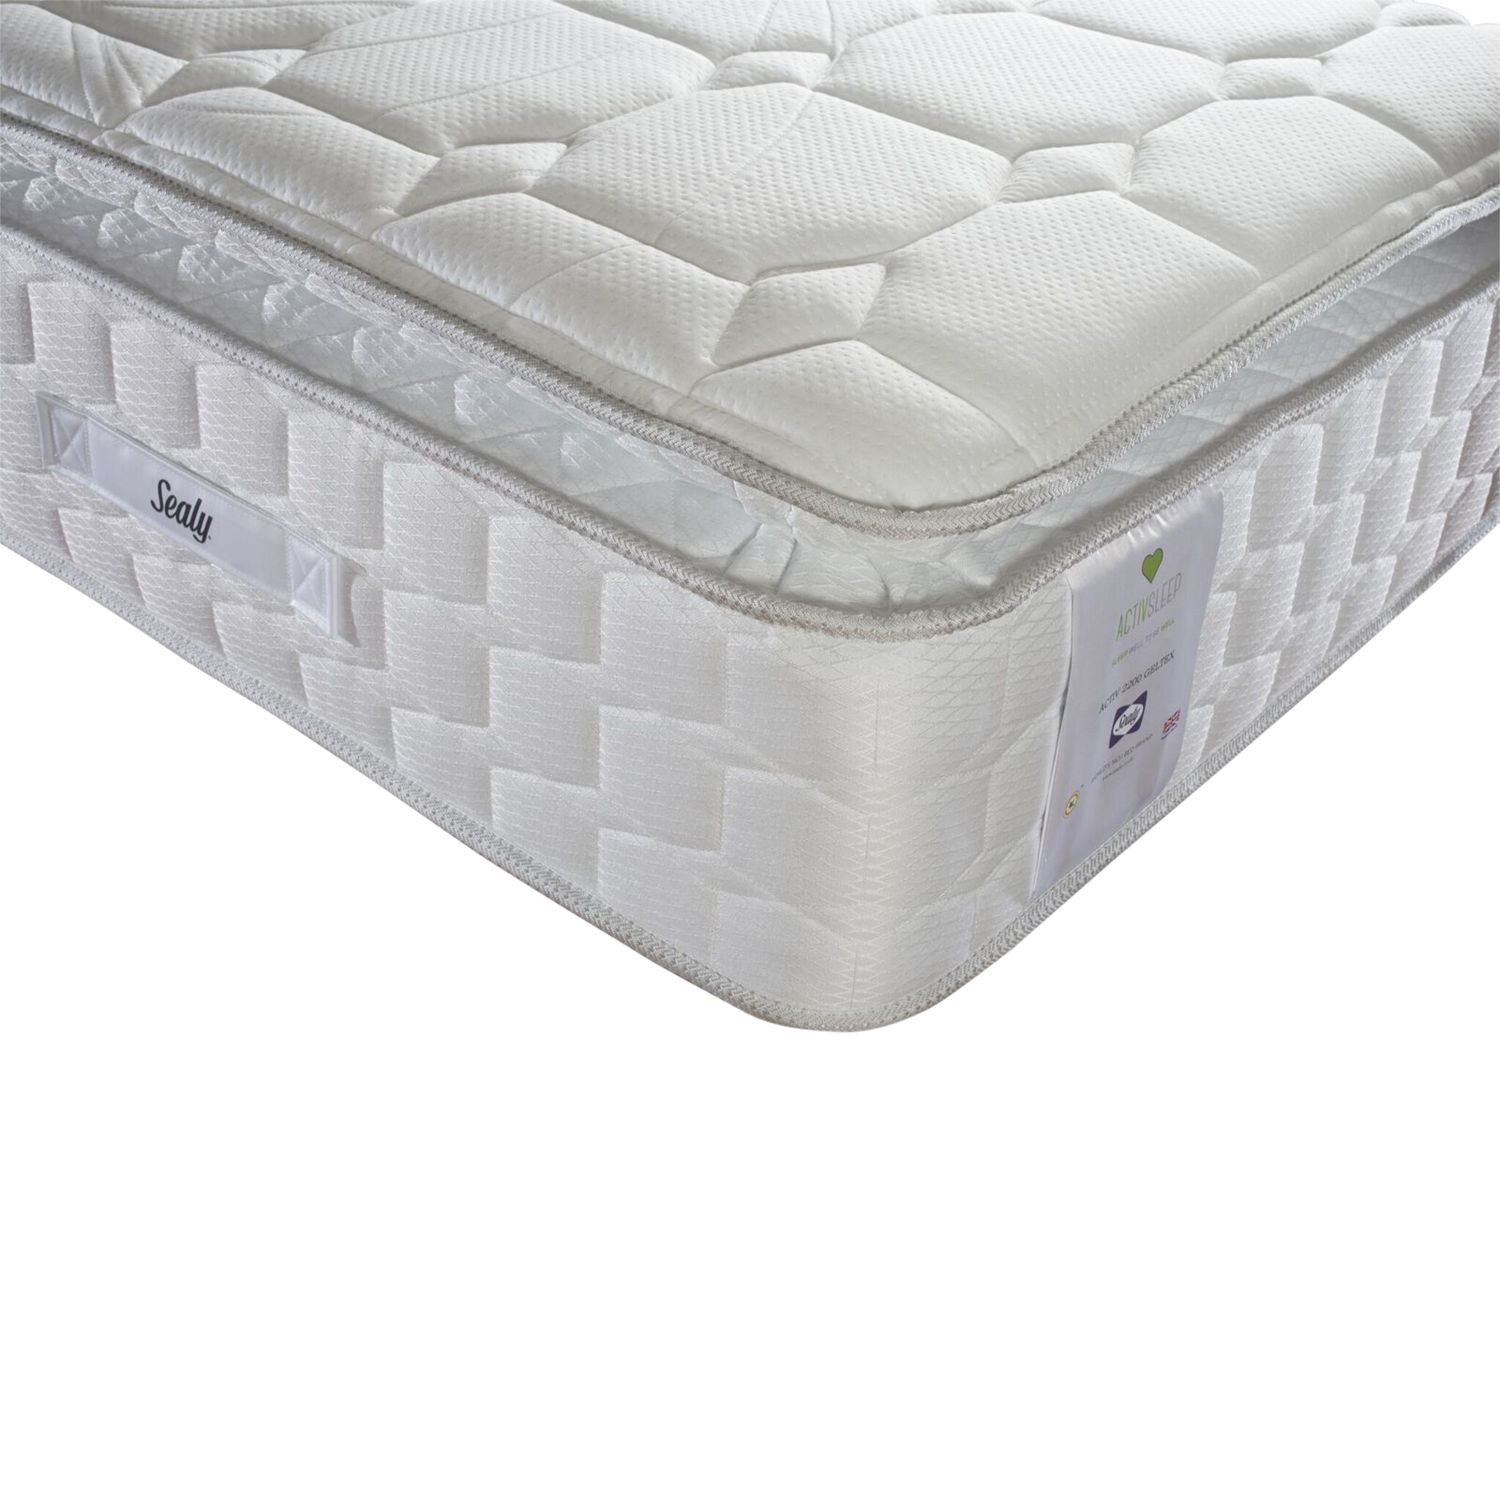 Sealy Sealy Activsleep Geltex 2200 Pocket Spring Mattress, Medium, Single